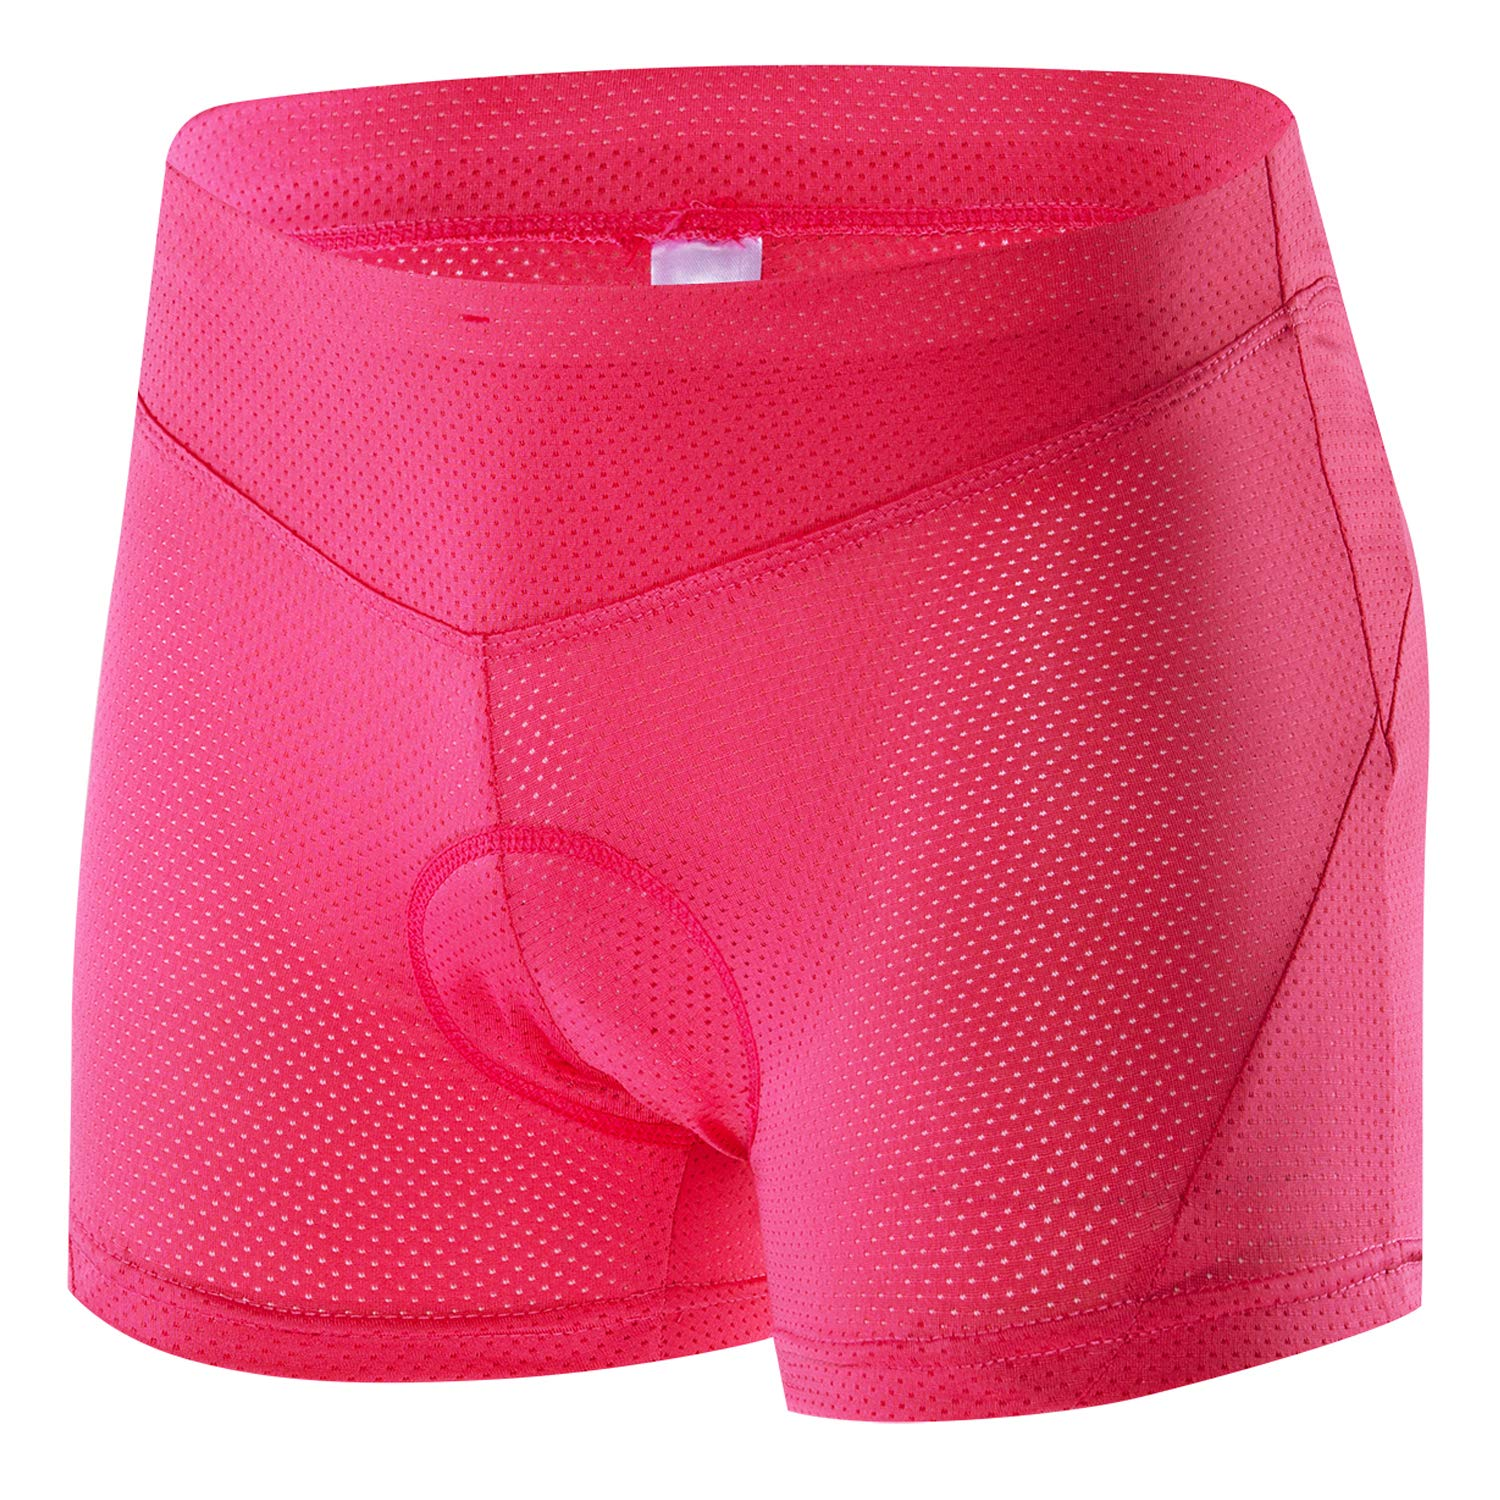 Cycling Underwear Shorts 3D Padded Gel Women's Bike Bicycle Undershorts Lightweight BreathableQuick Dry